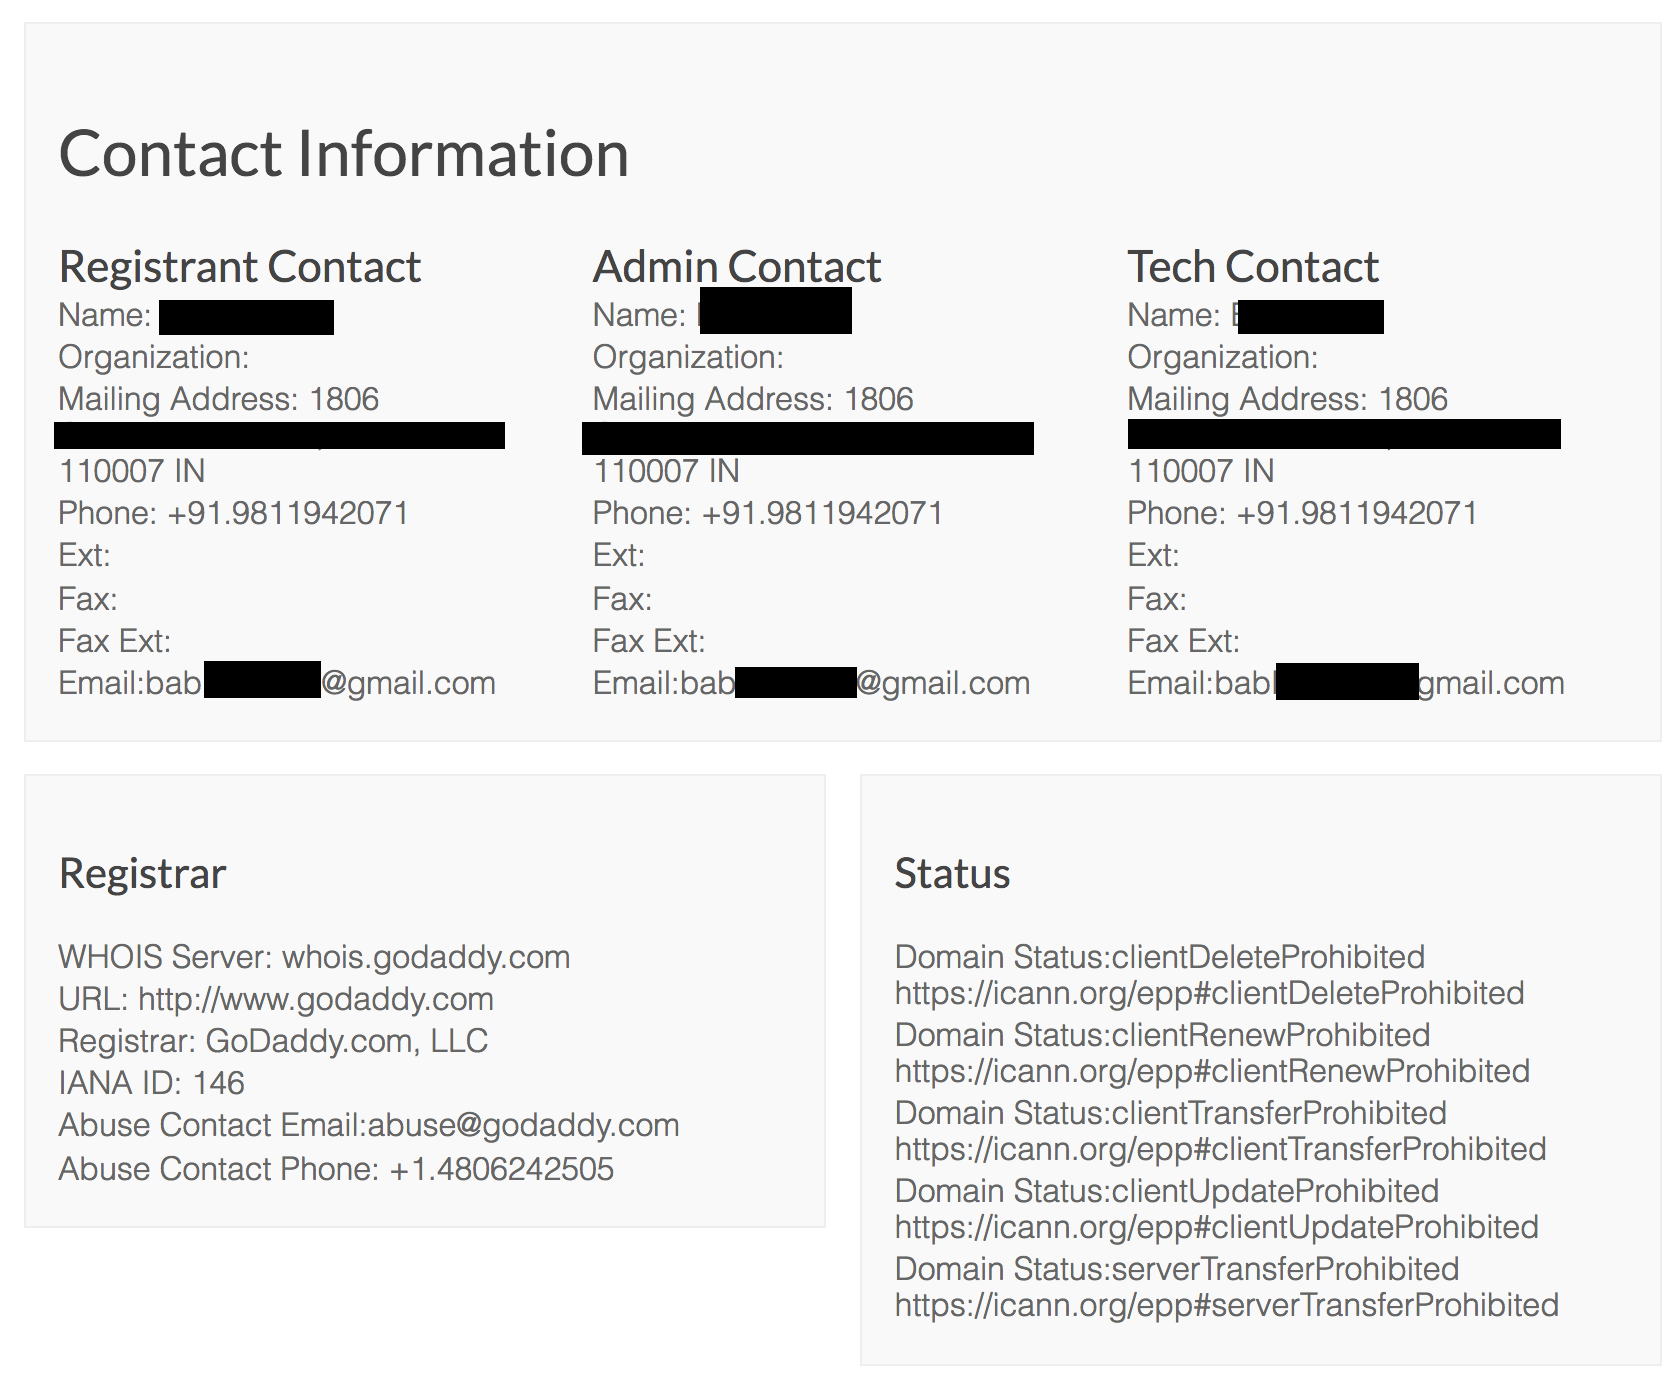 WHOIS information on domain owner